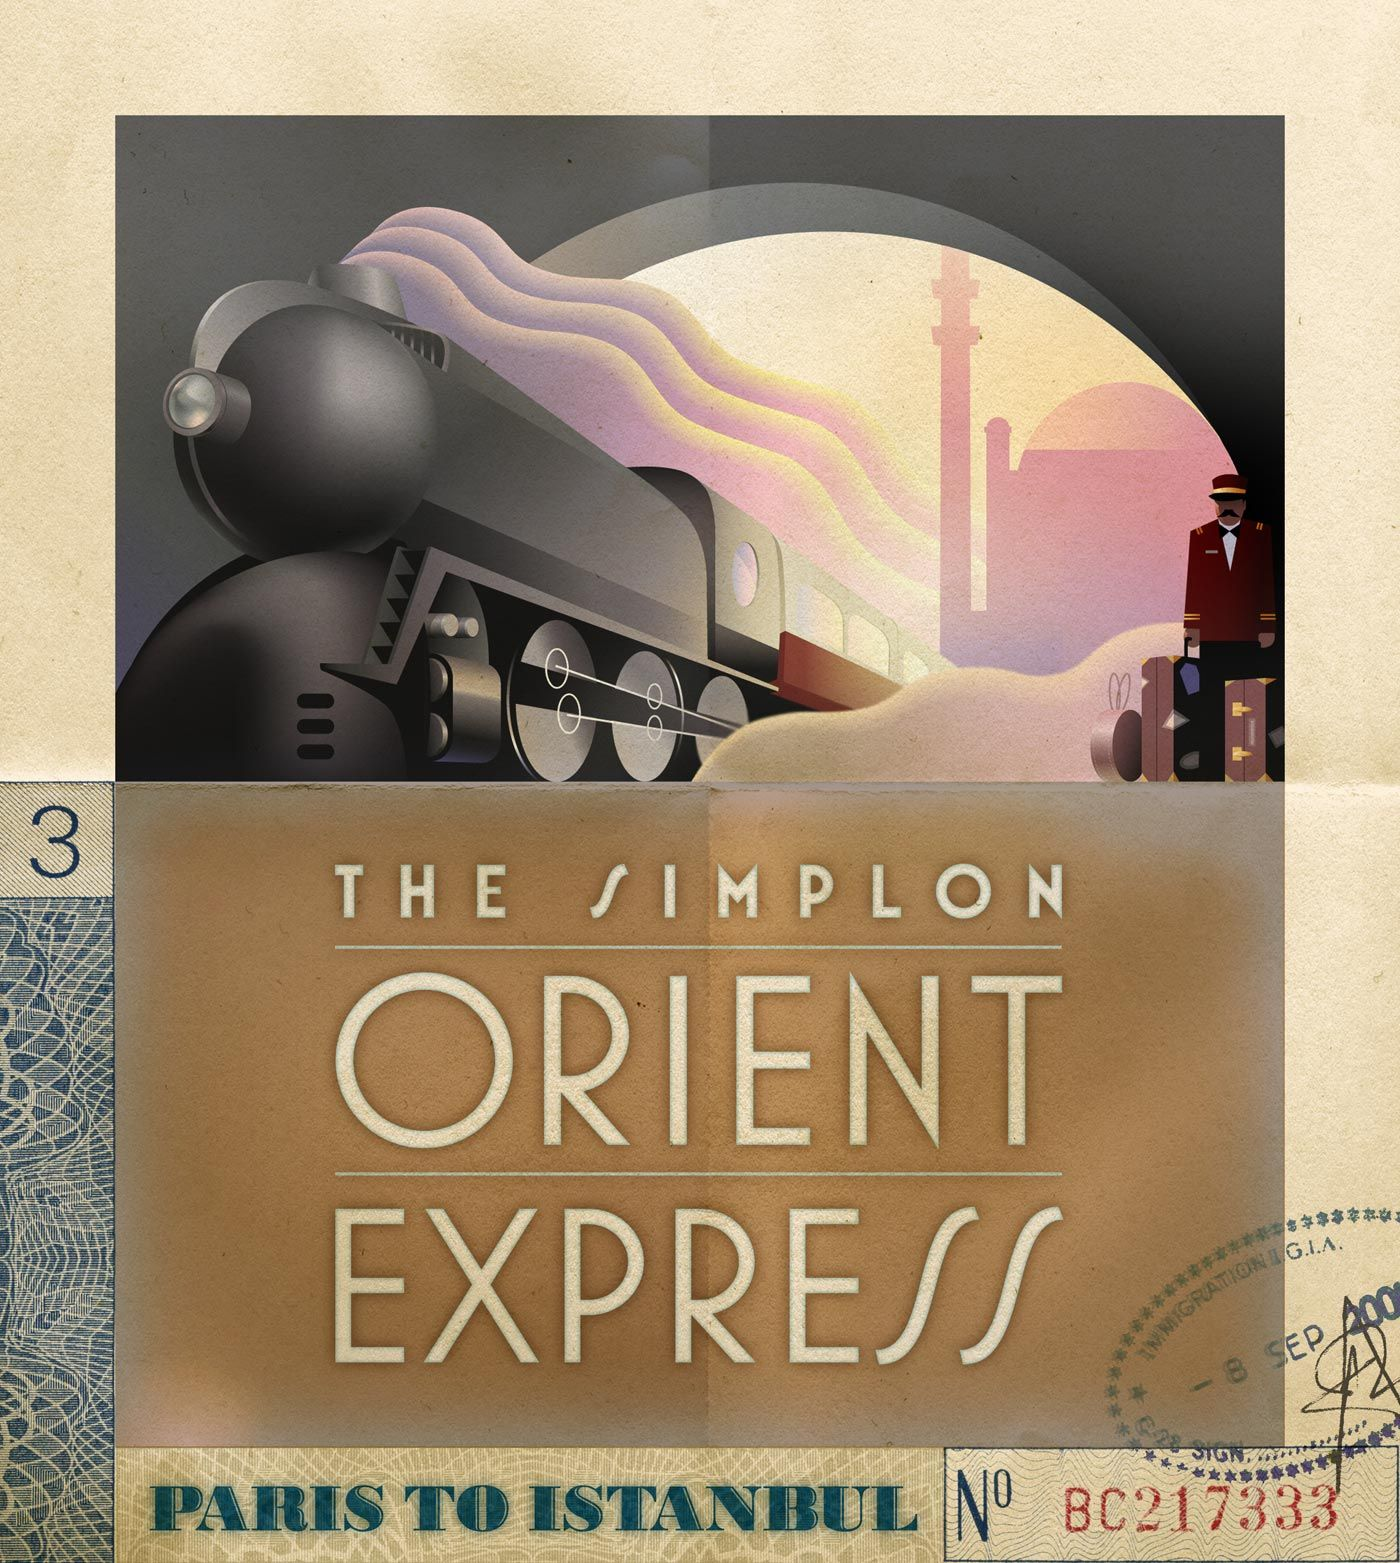 deco style orient express poster illustration copyright. Black Bedroom Furniture Sets. Home Design Ideas